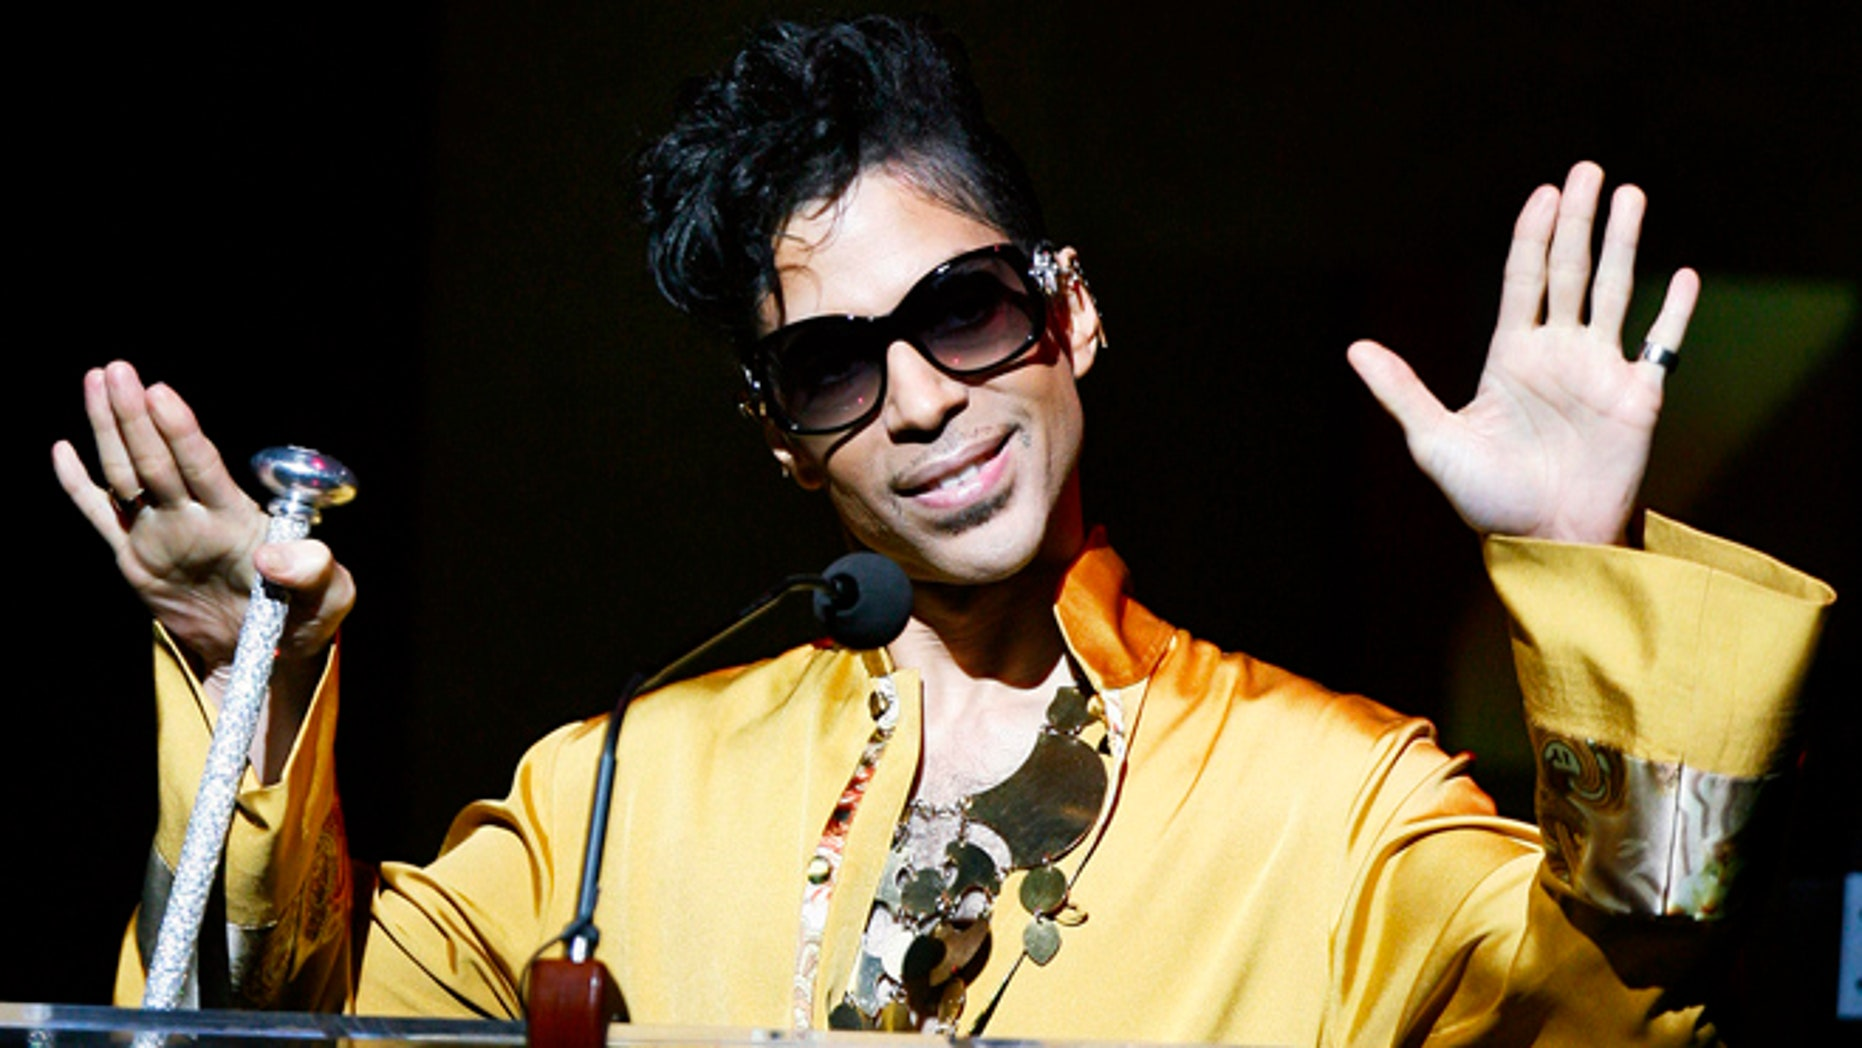 Prince at the Apollo Theatre in 2009.